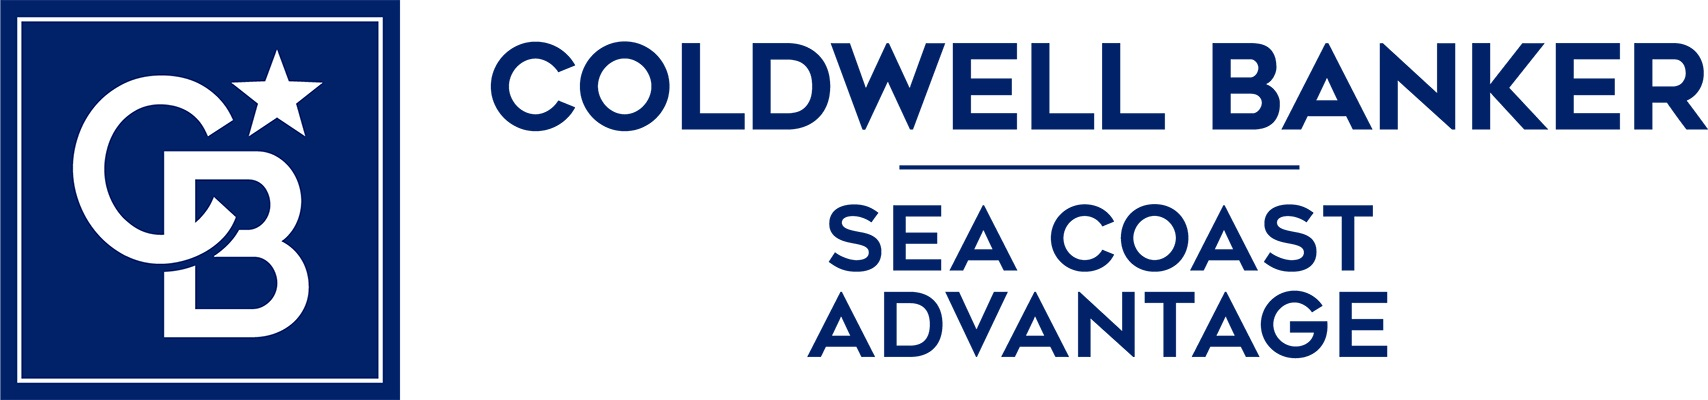 Judy Souders - Coldwell Banker Sea Coast Advantage Realty